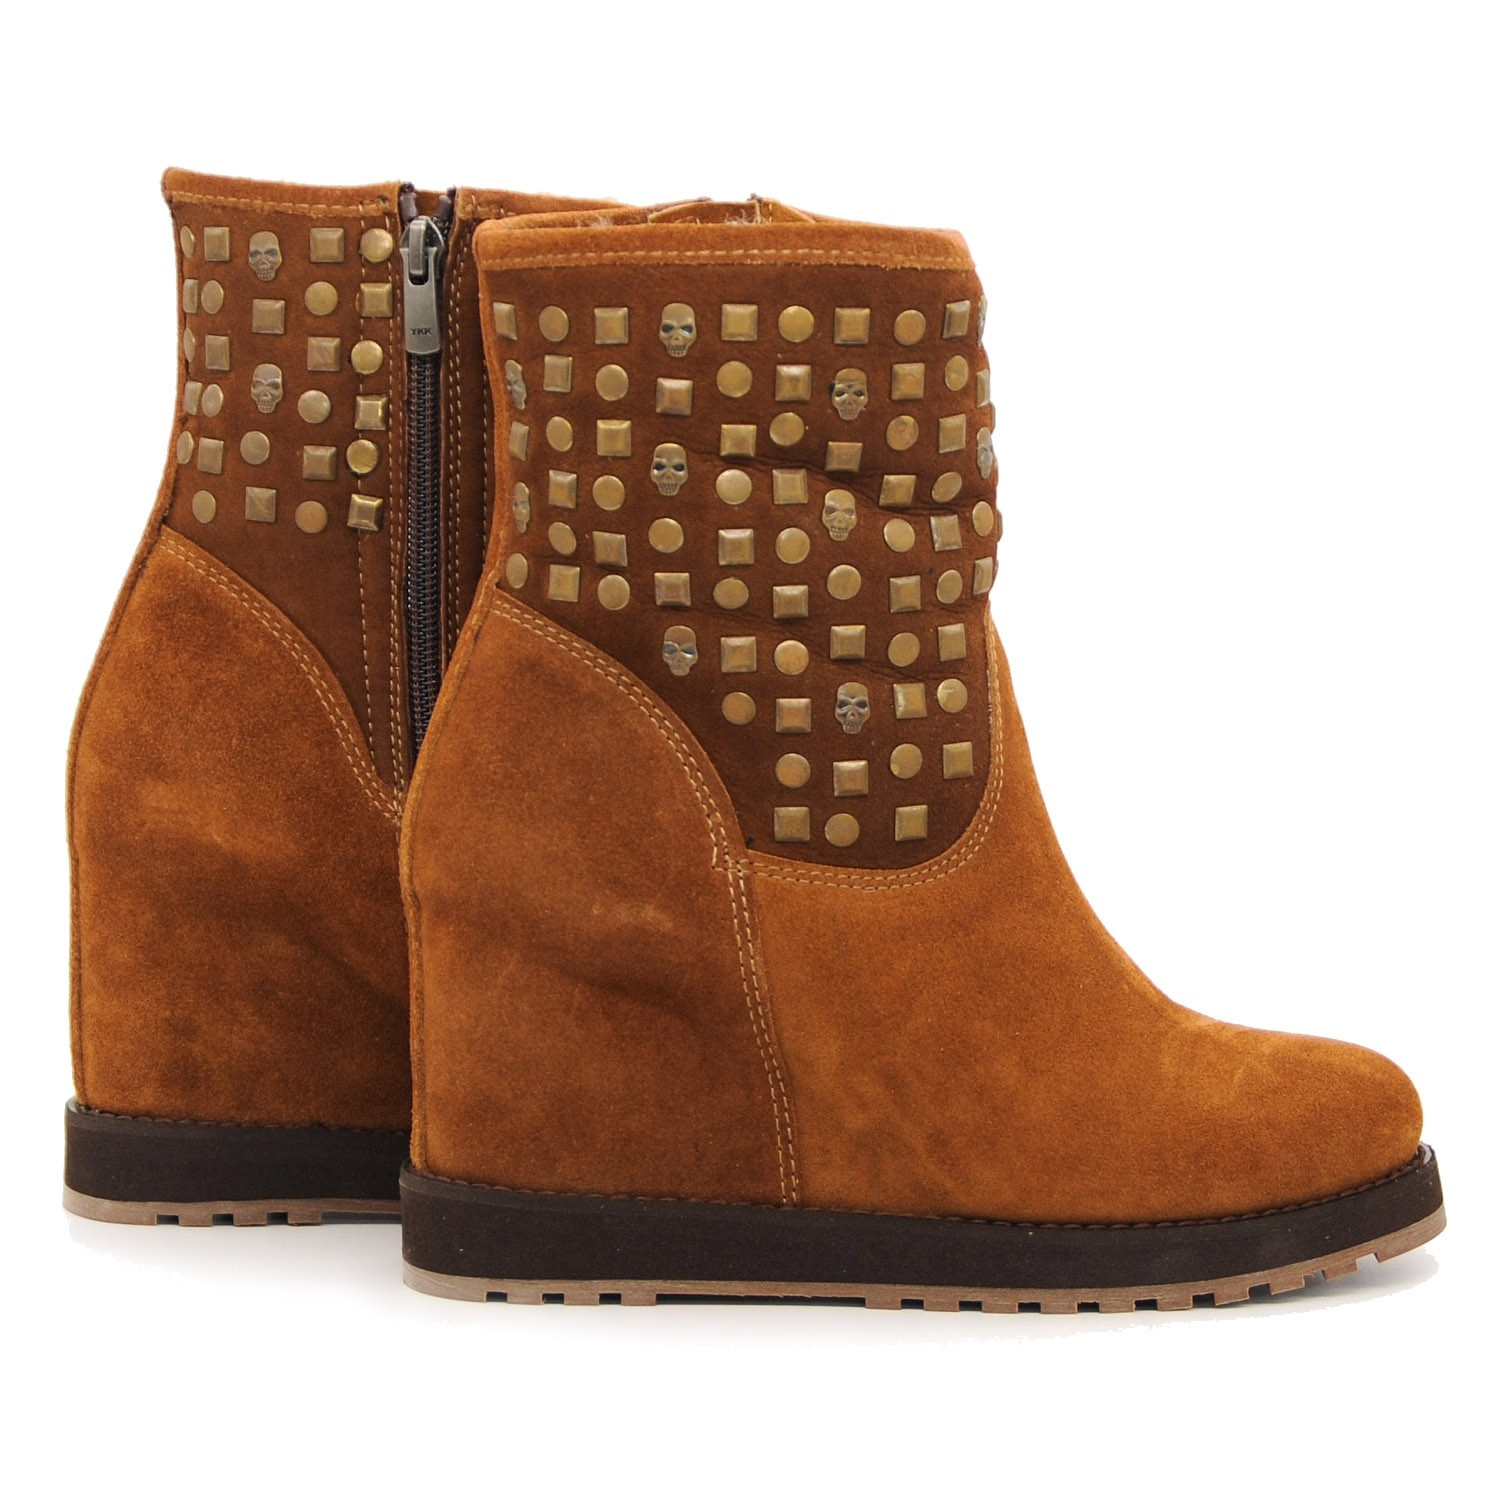 Pegia Ankle Boots Soft Suede with Raised Inner Heel and Decorative Studs - Tan